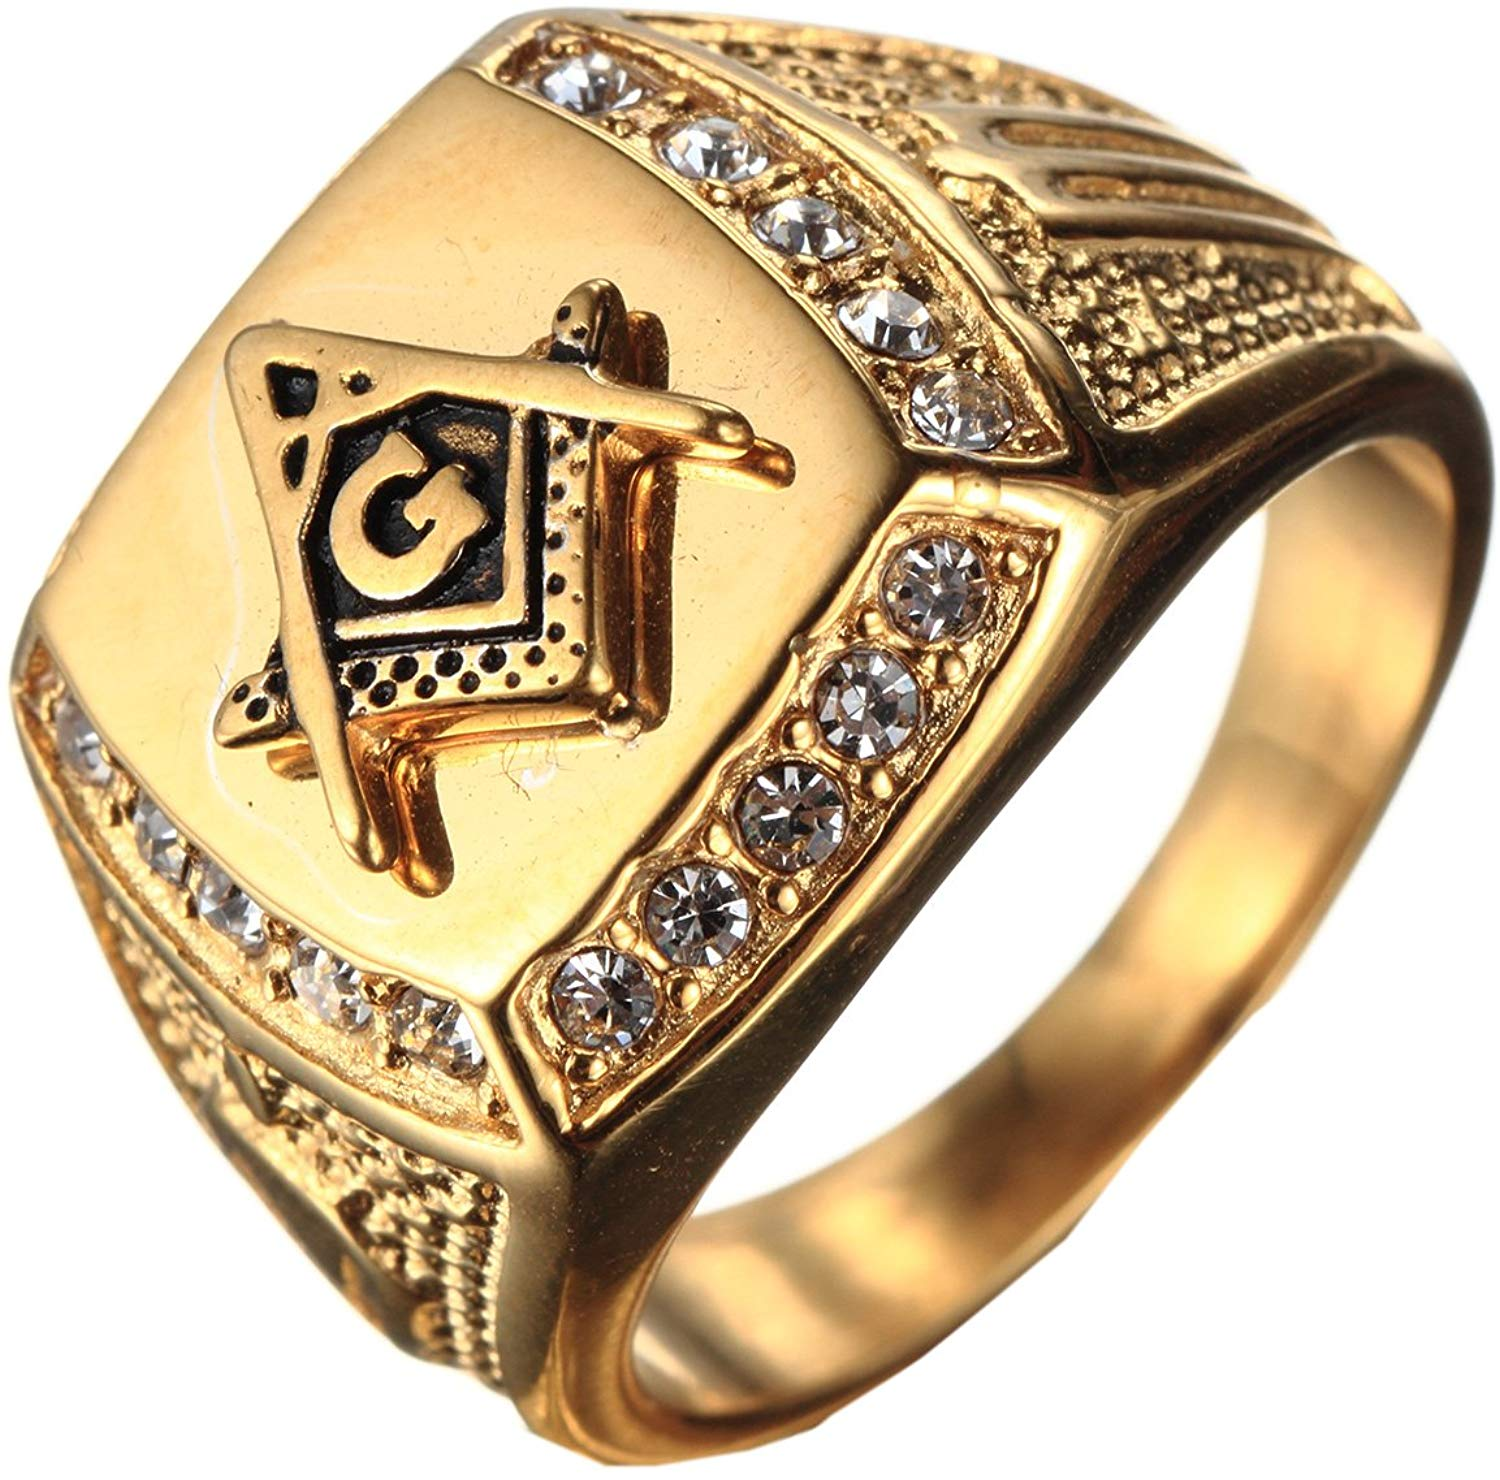 Freemason Gold Plated Stainless Steel Rings - SolomonsOrder